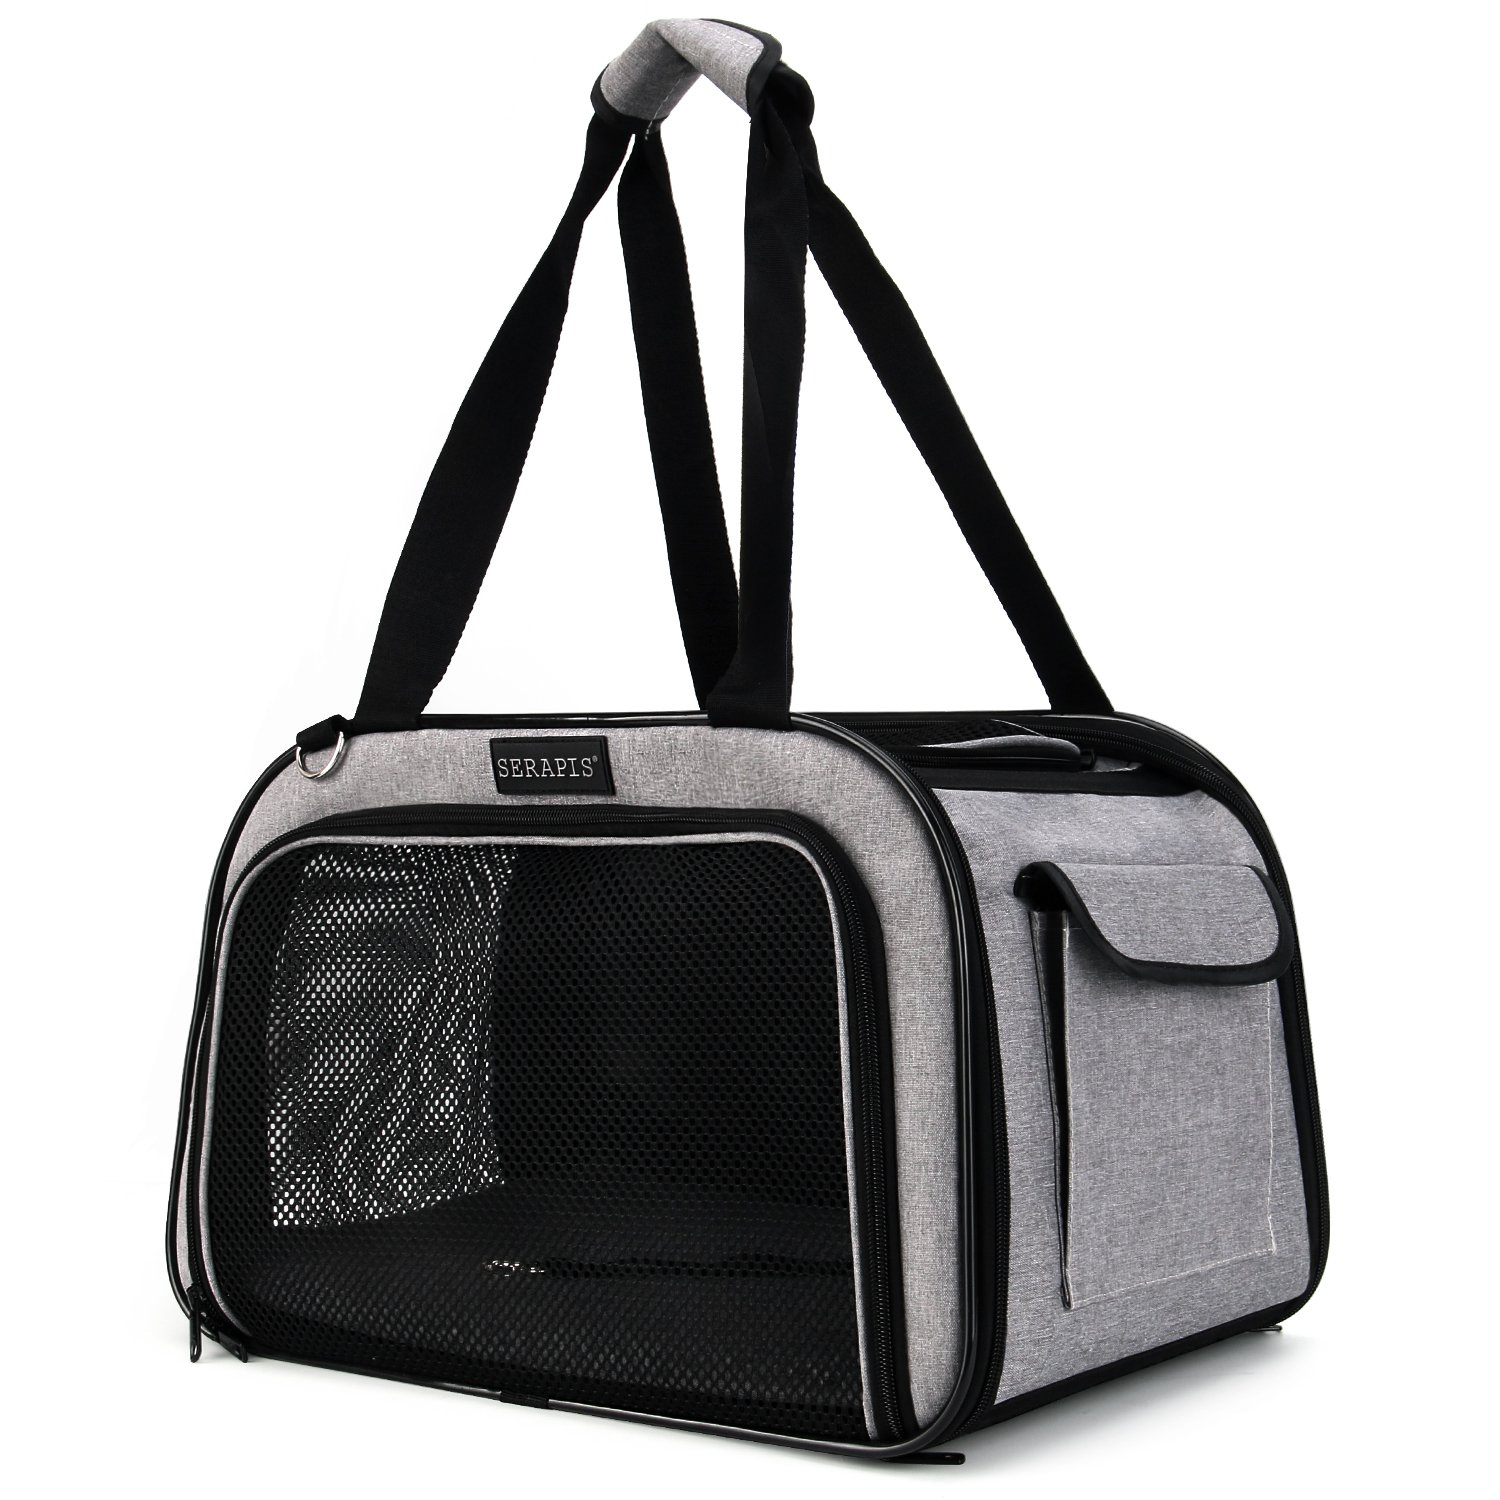 Serapis Airline Approved Pet Carriers,Soft-Sided Foldable Portable Kennel Designed for Travel, Under Seat Compatibility, Perfect for Cats and Small Dogs,Outdoor & Indoor(Medium)